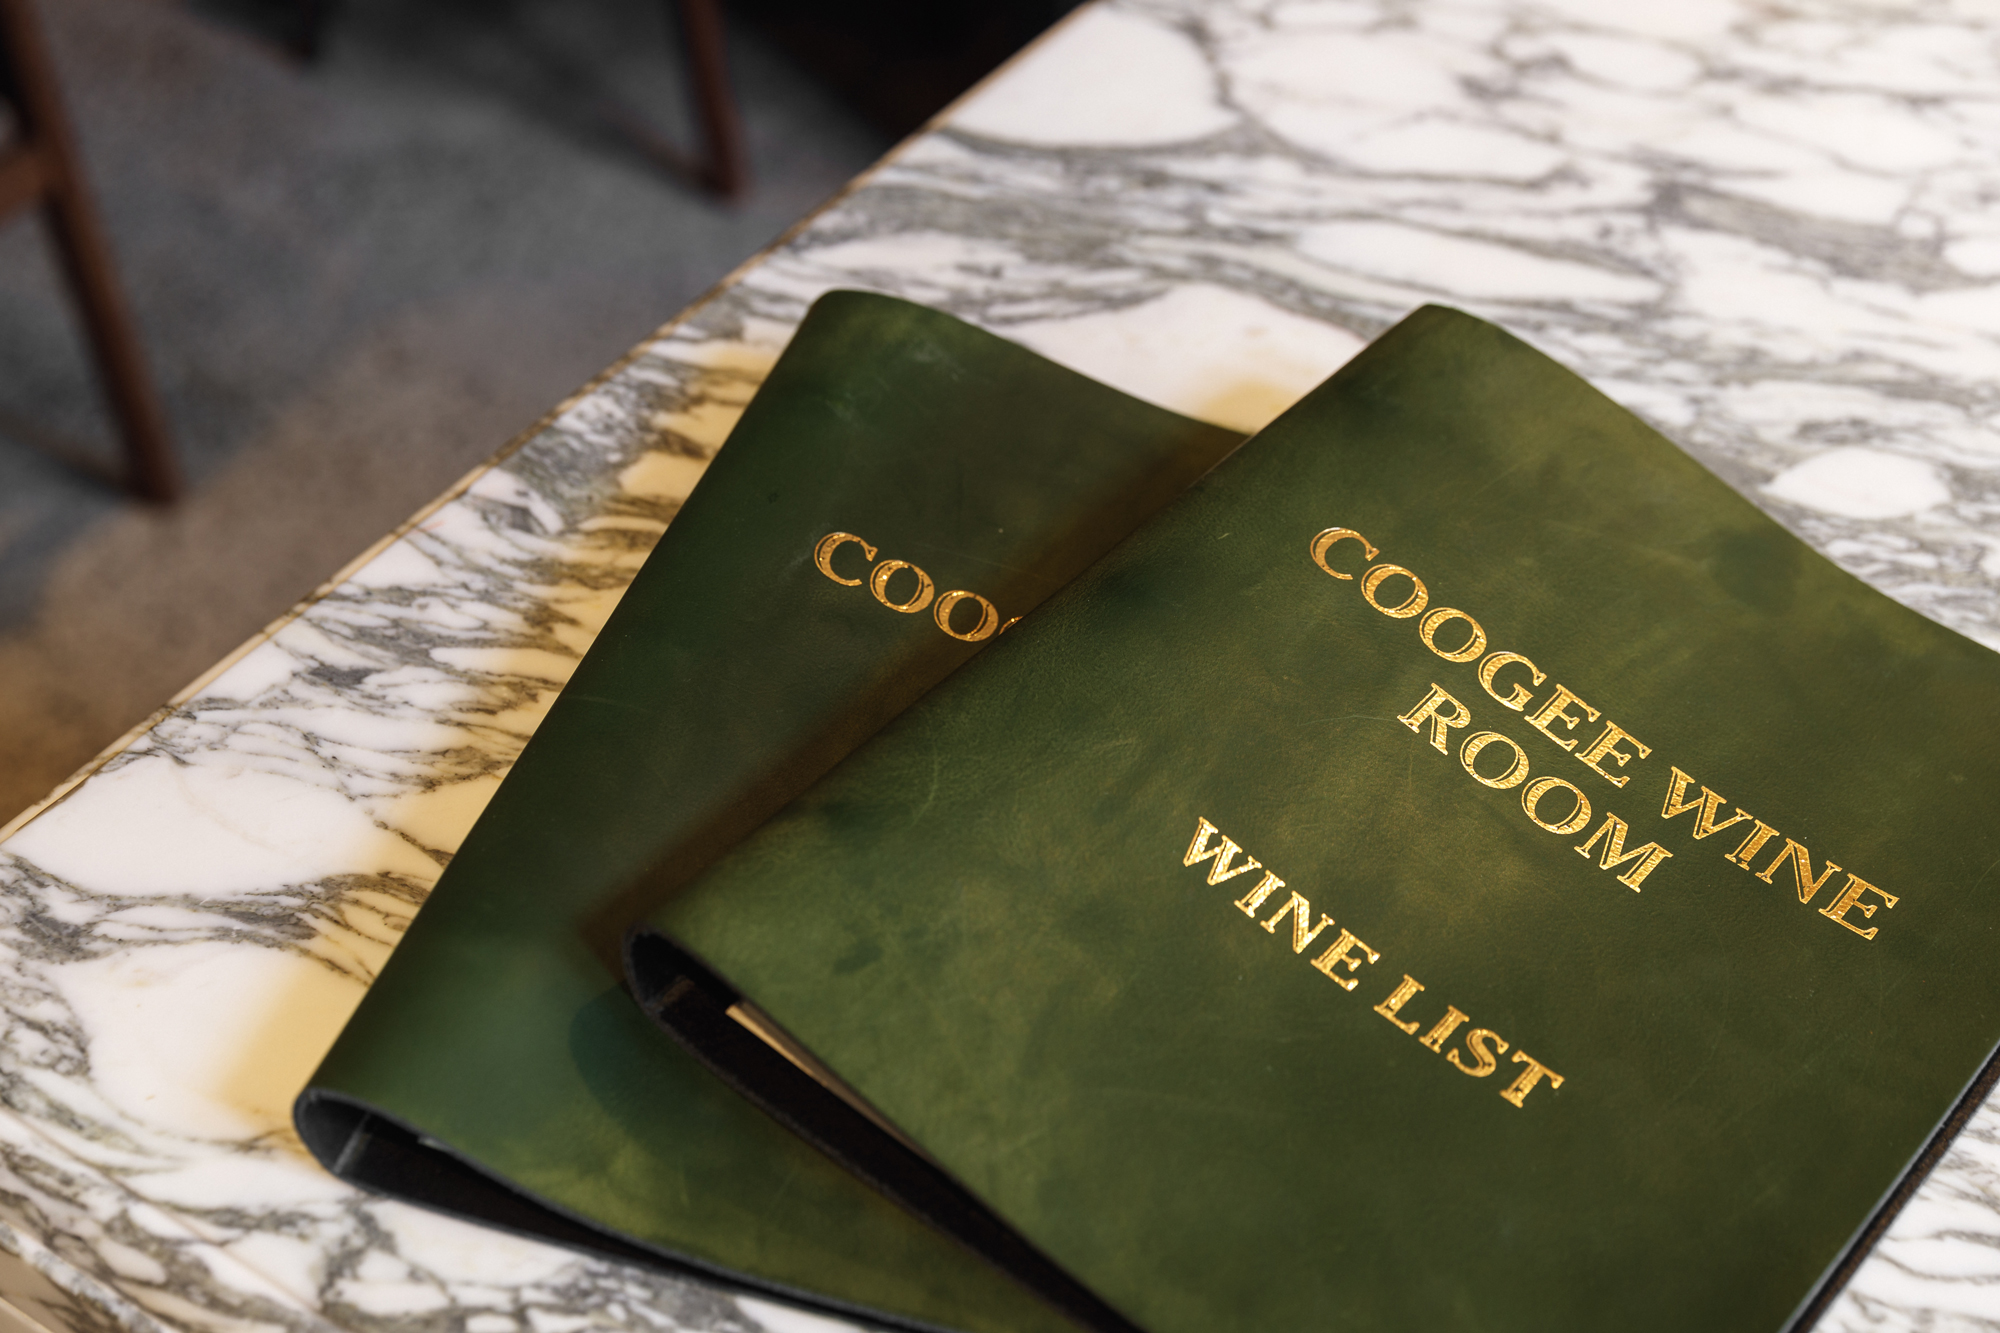 sydney design social coogee wine room logo branding menu covers green leather